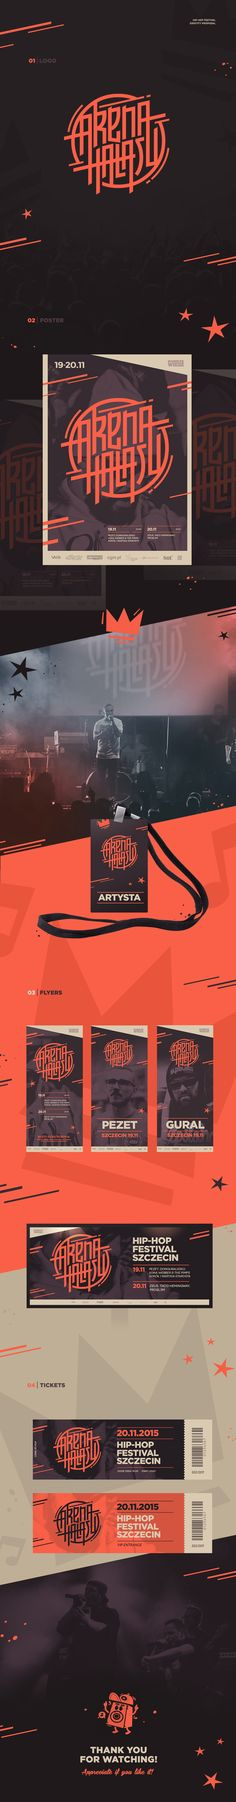 Arena Hałasu | hip-hop festival on Behance